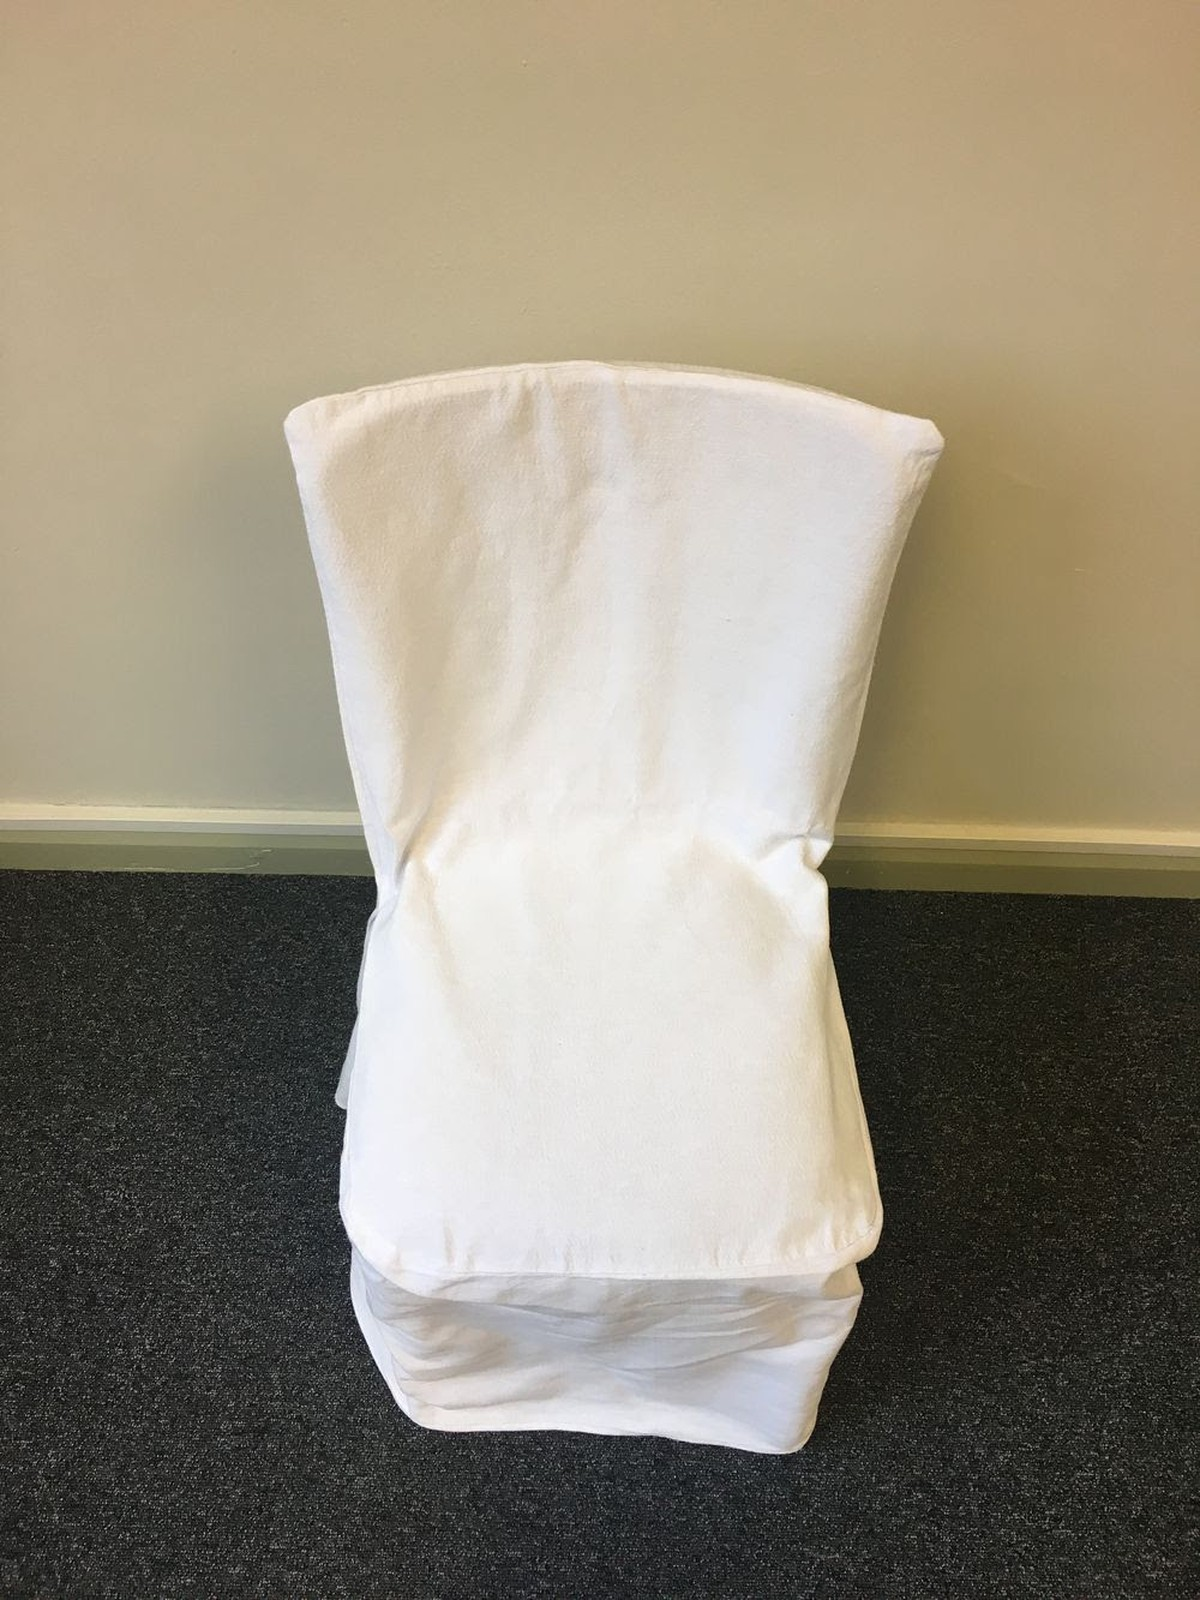 banquet chair covers for sale malaysia walmart slipcovers new rtty1